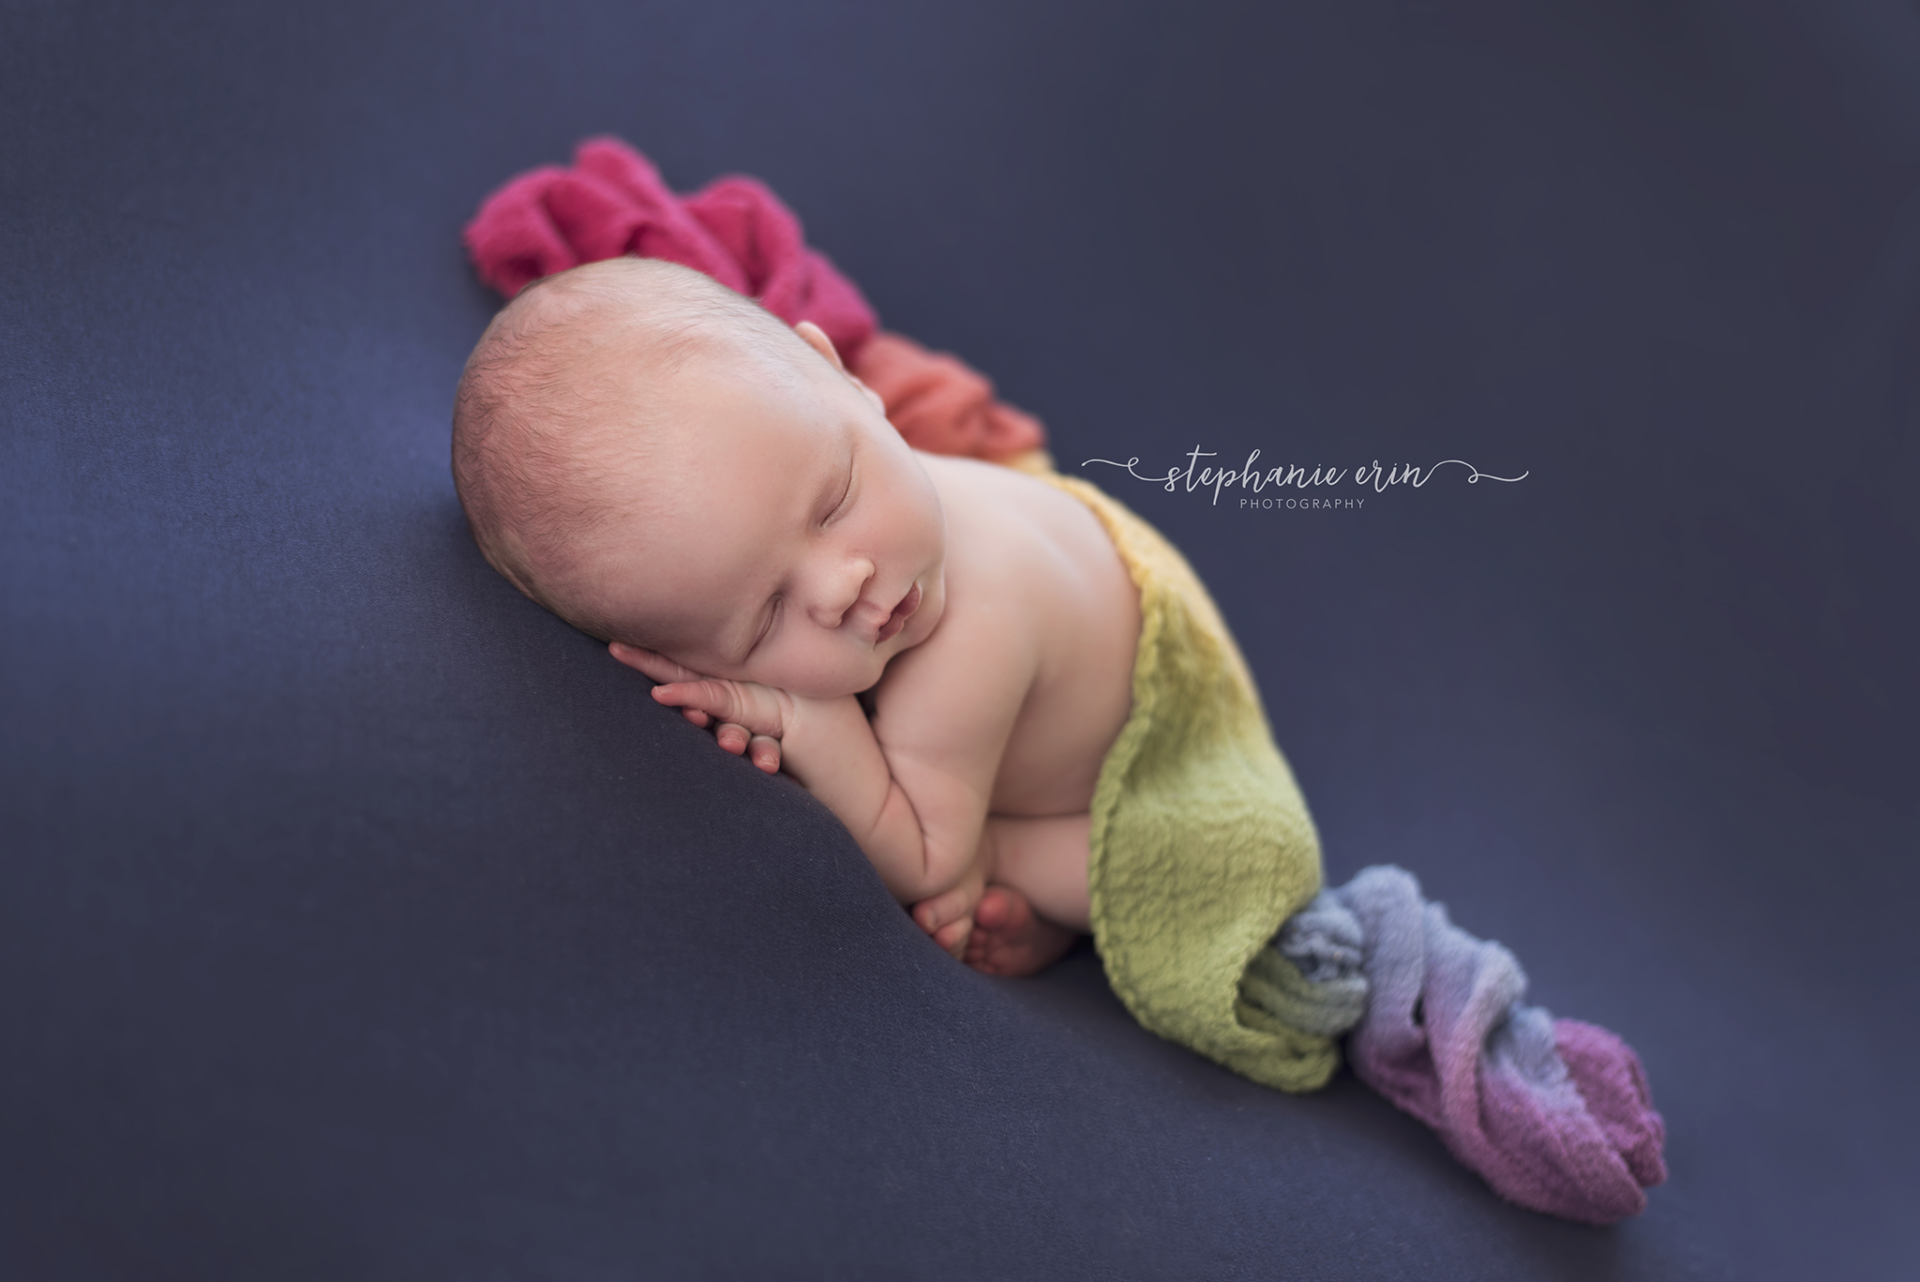 NOAH GRAY  |  NEWBORN SESSION  |  SOUTHERN UTAH NEWBORN PHOTOGRAPHER